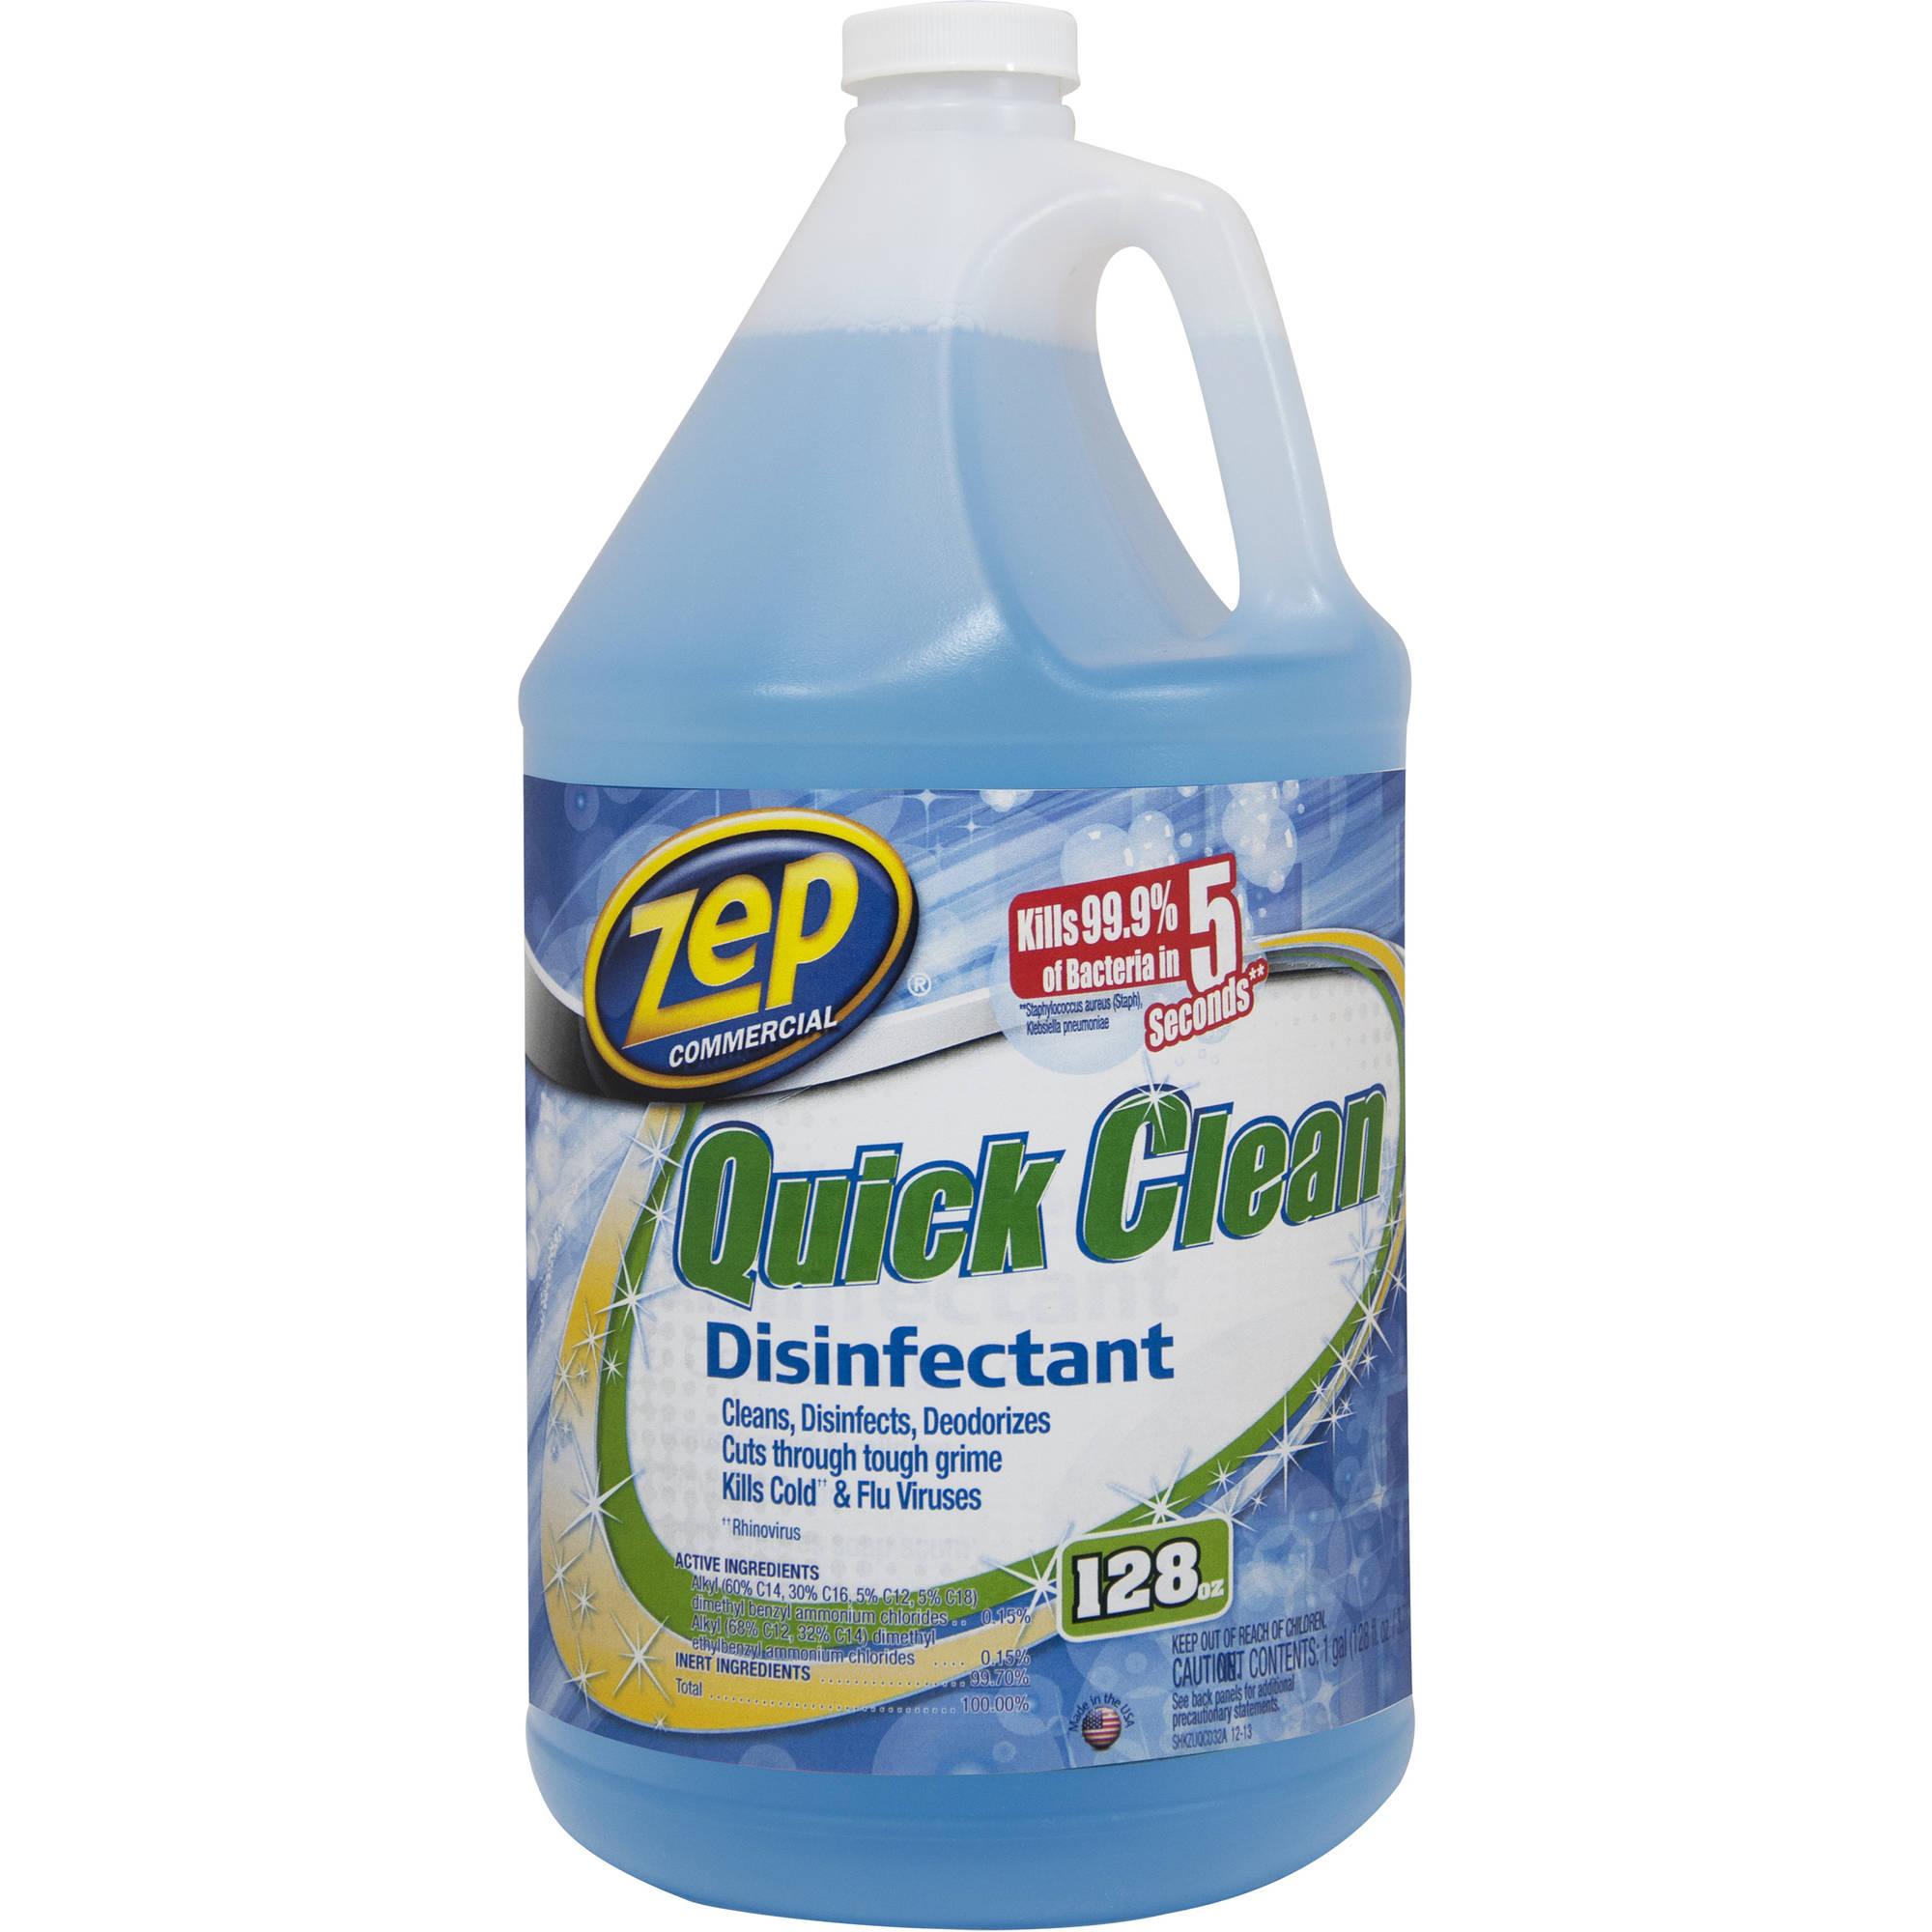 Zep Commercial Quick Clean Disinfectant, 1 gal